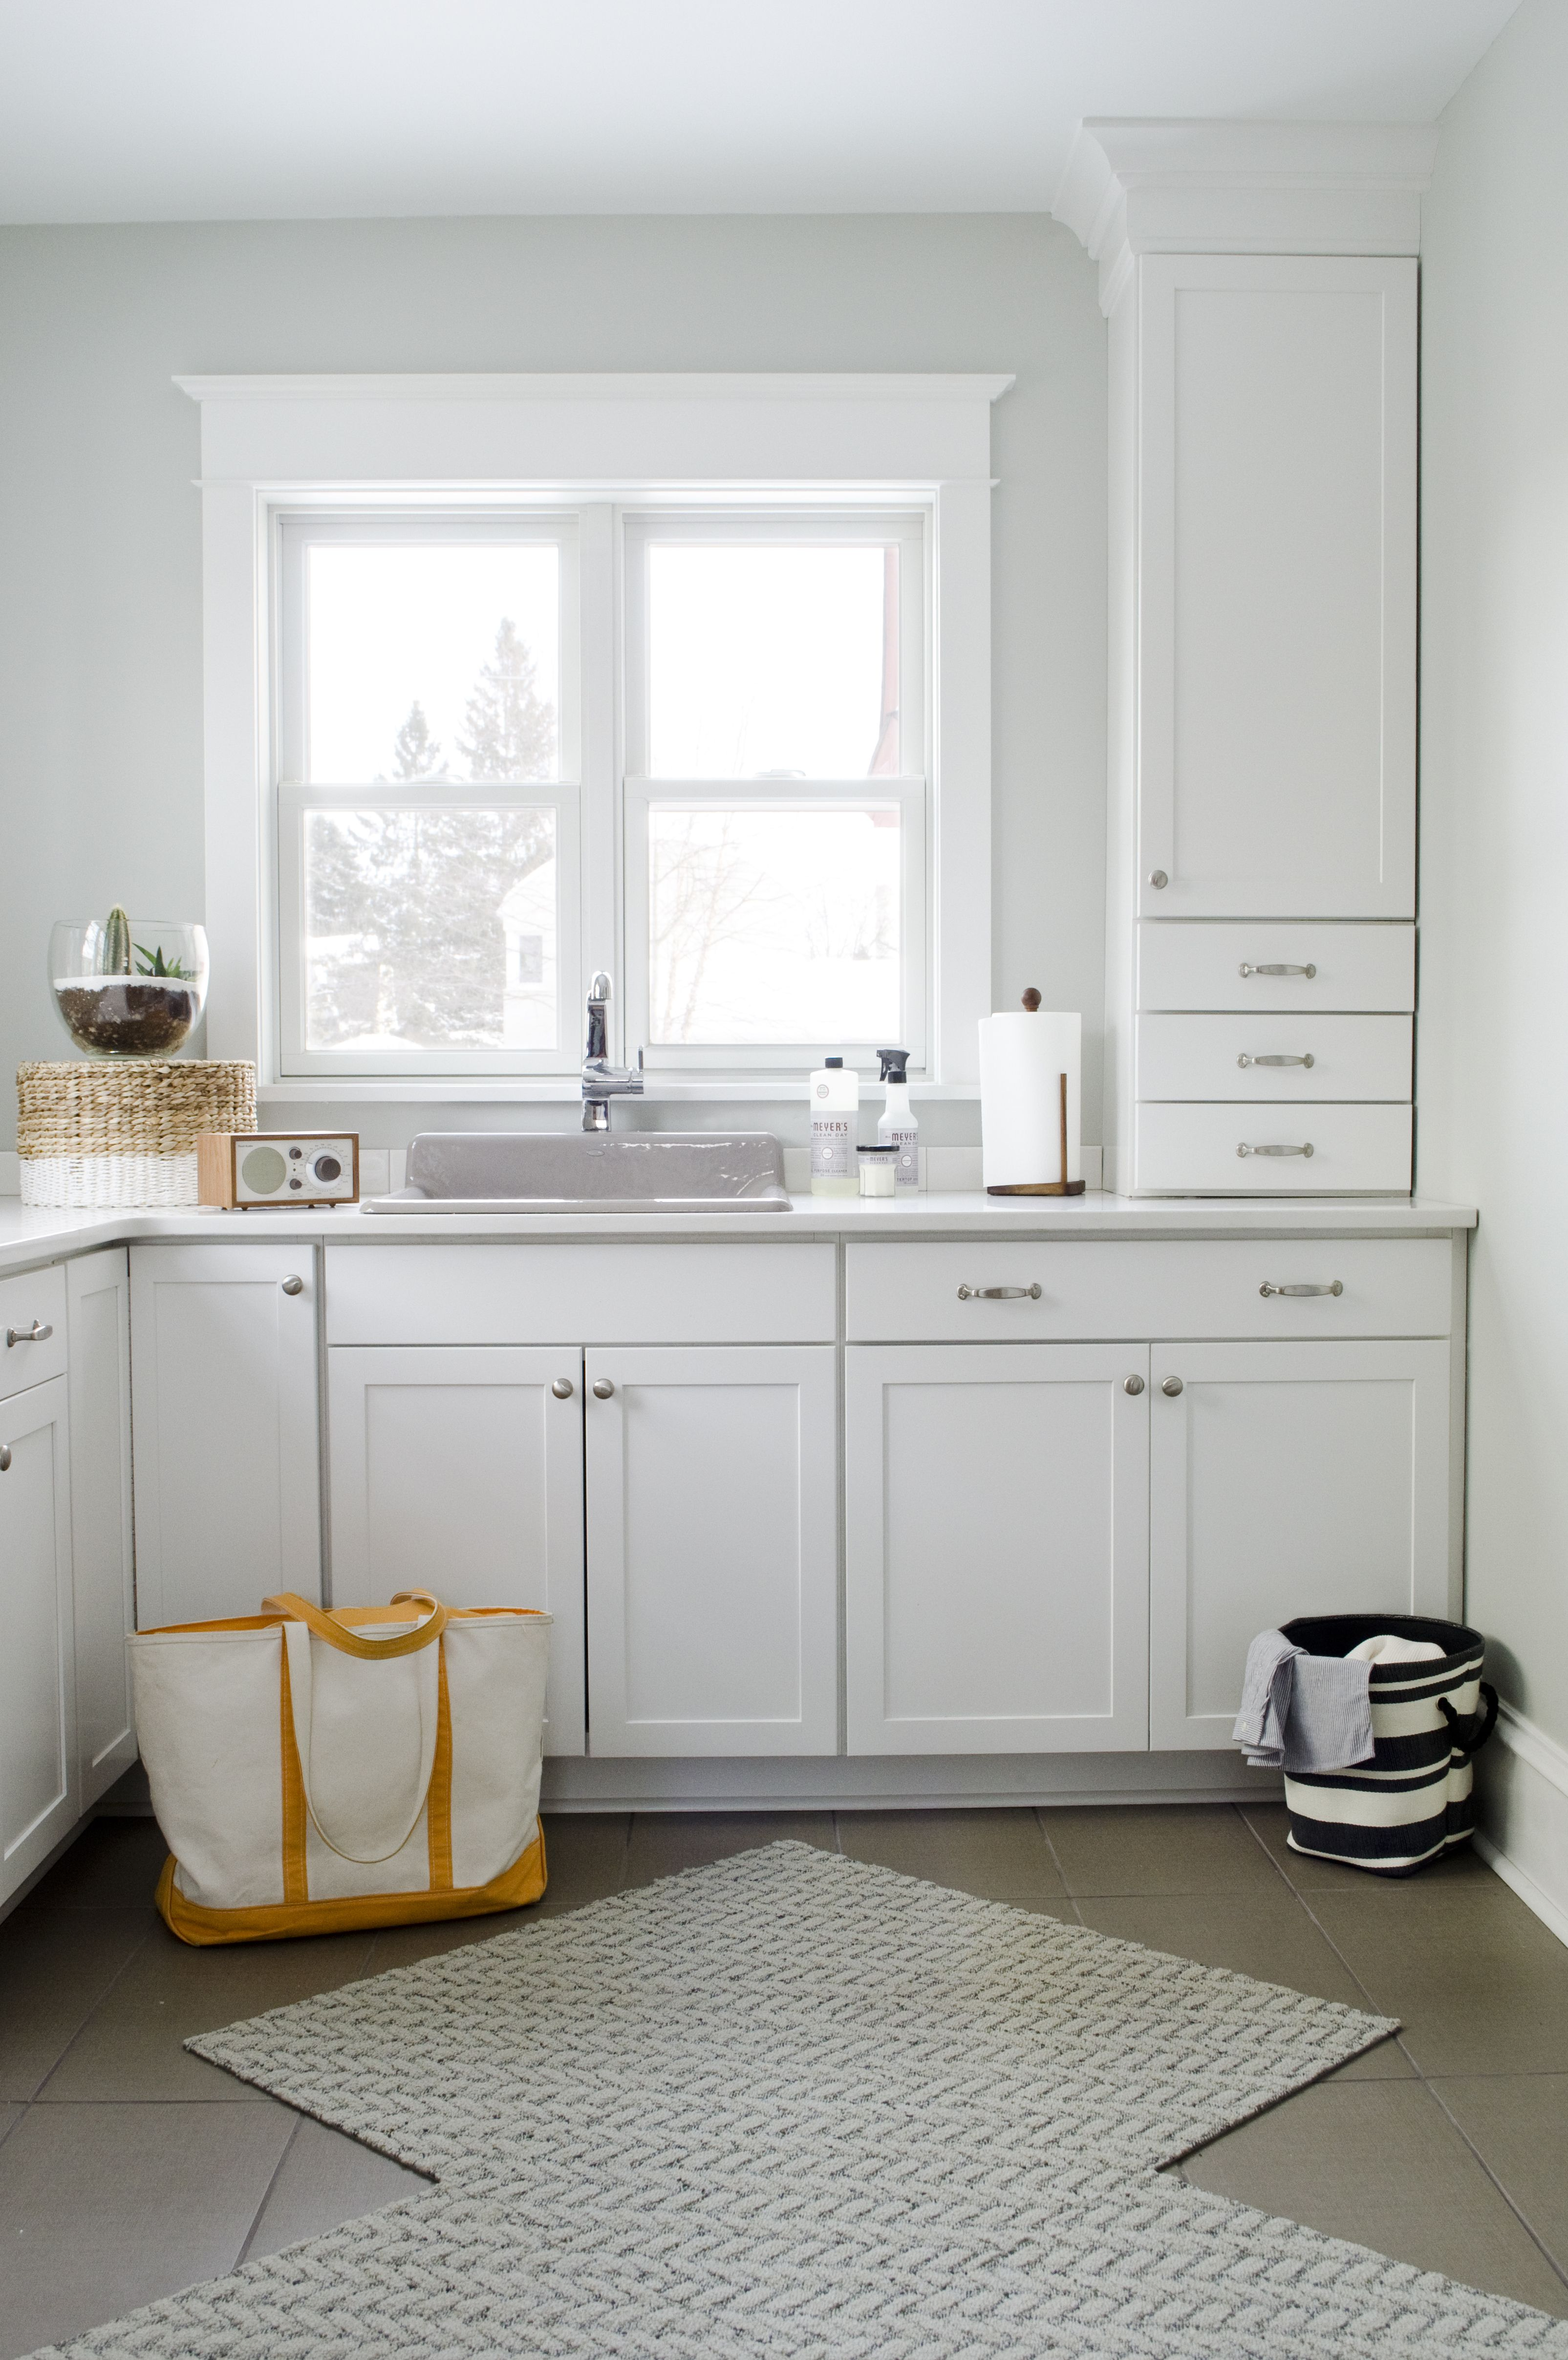 aristokraft kitchen cabinets under cabinet lights winstead door style in white provides a